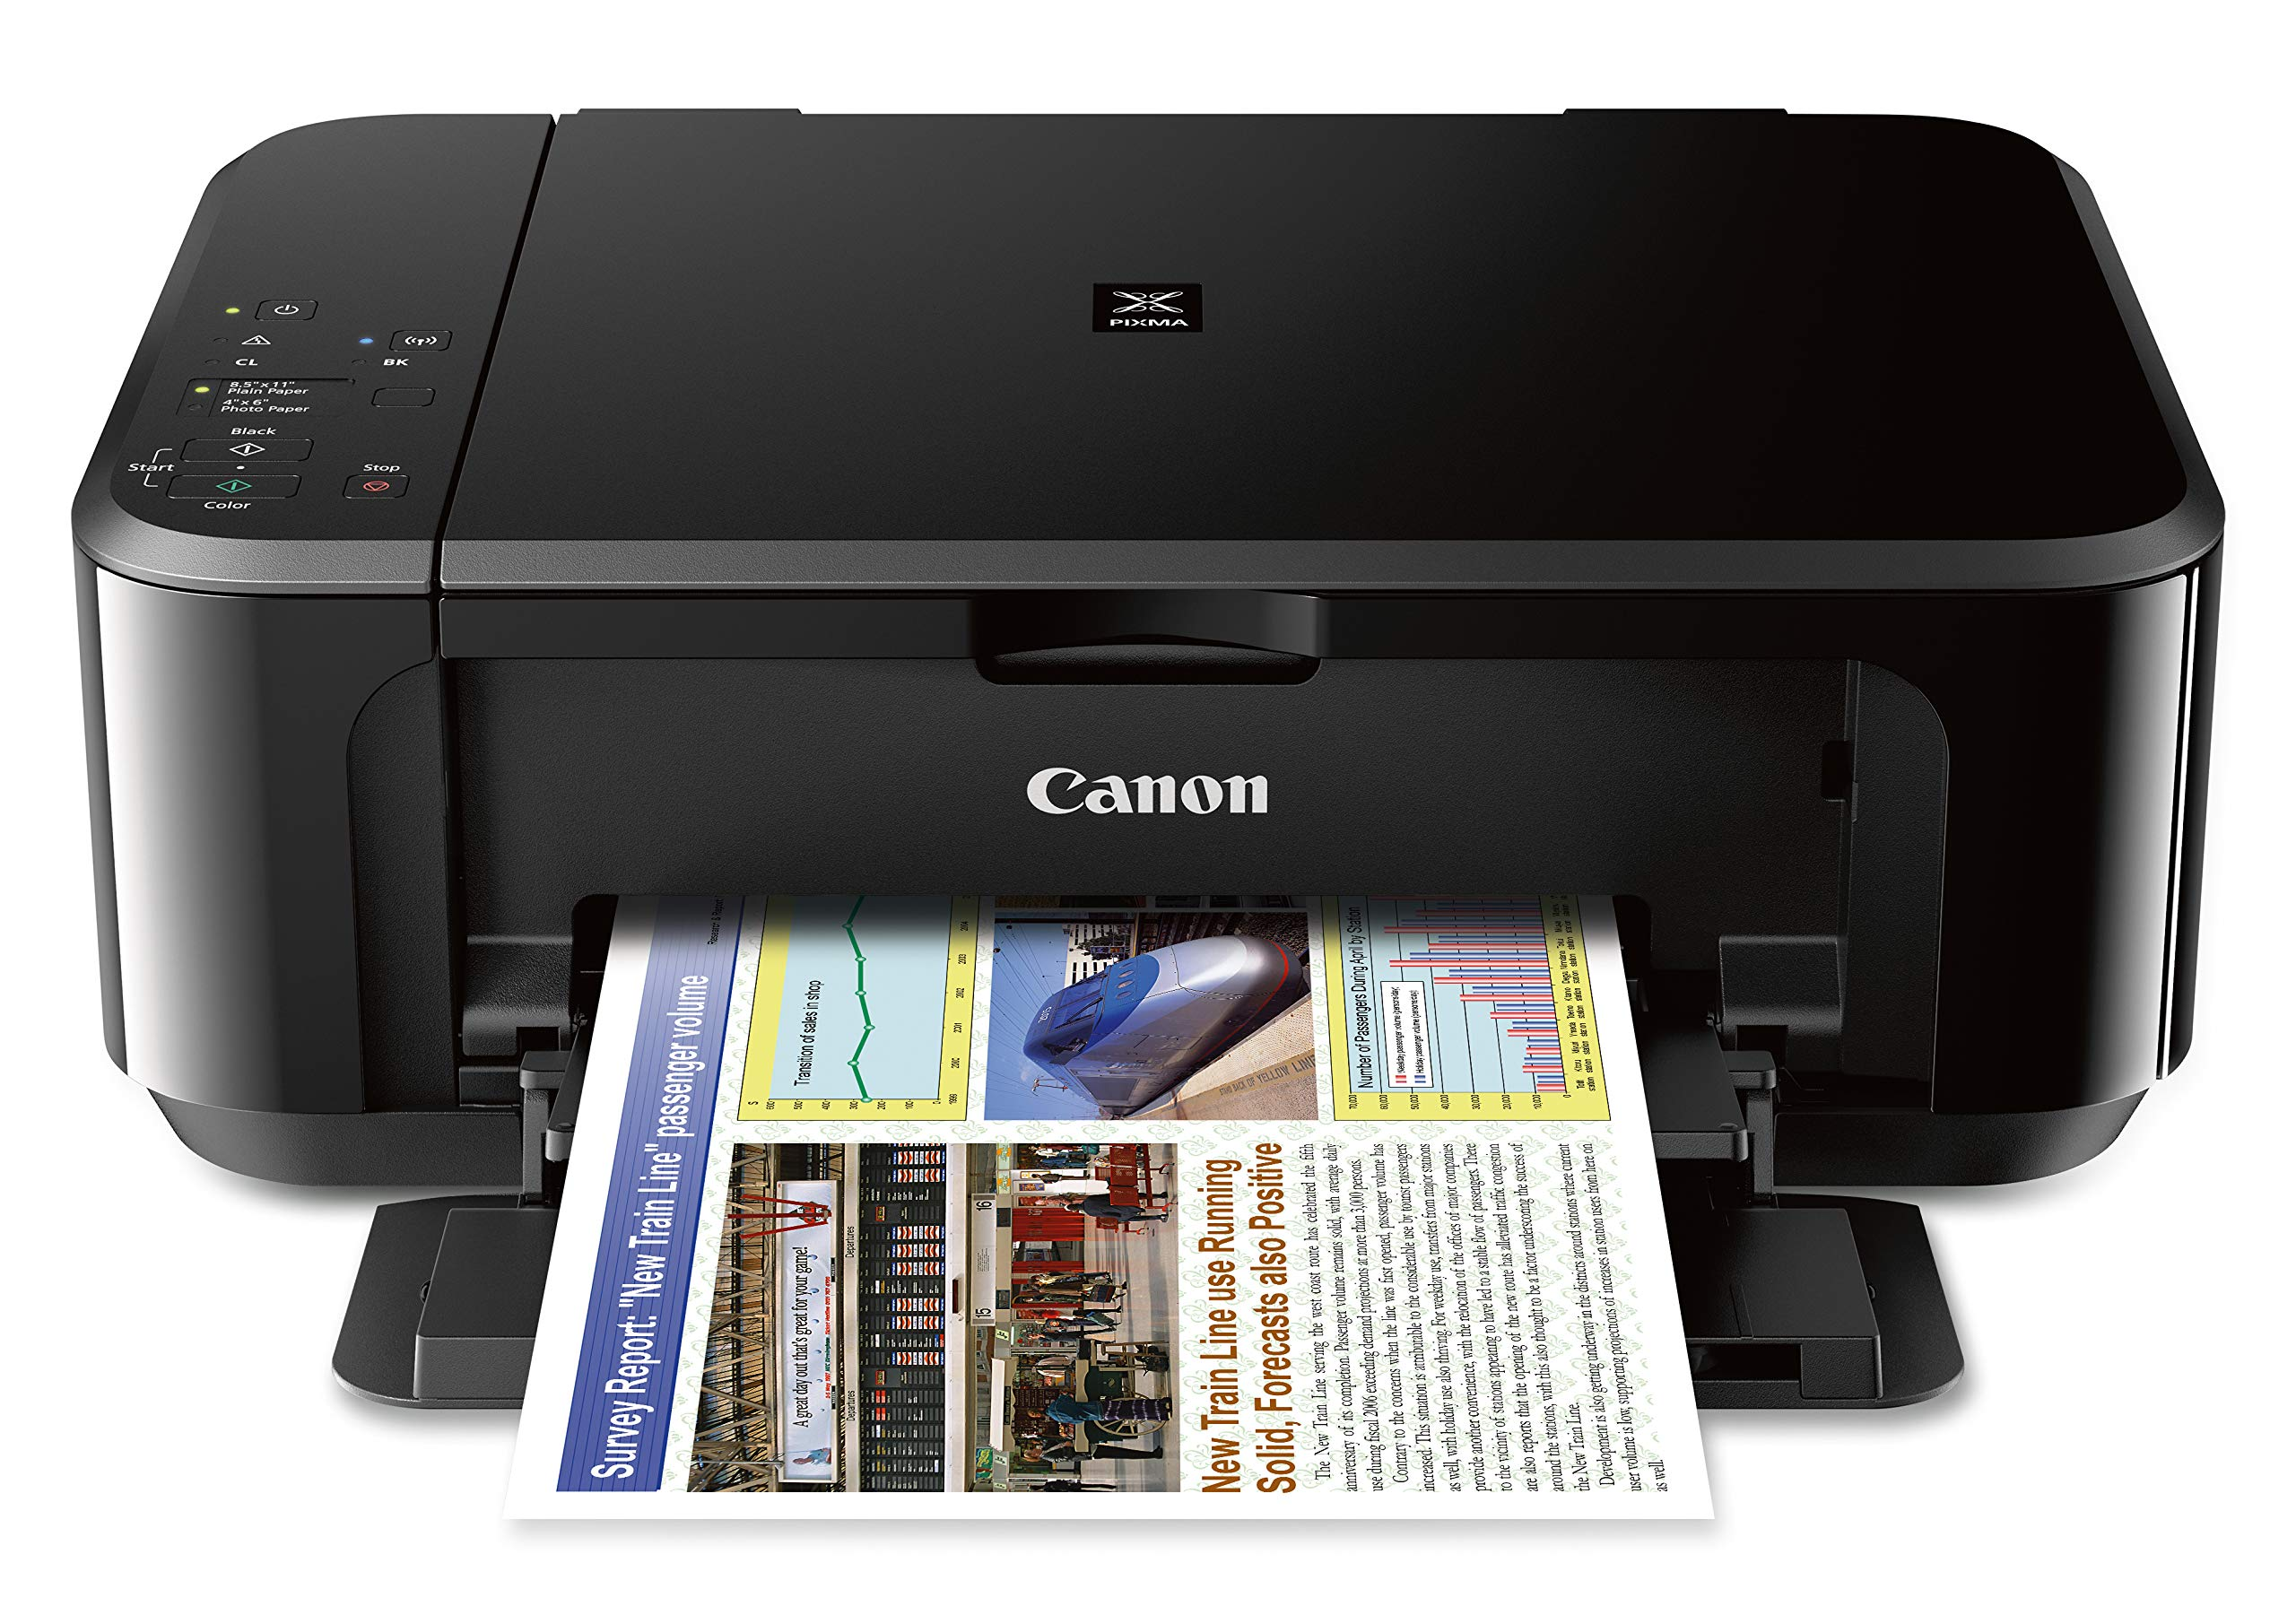 Canon PIXMA MG3620 Wireless All-In-One Color Inkjet Printer with Mobile and Tablet Printing, Black by Canon